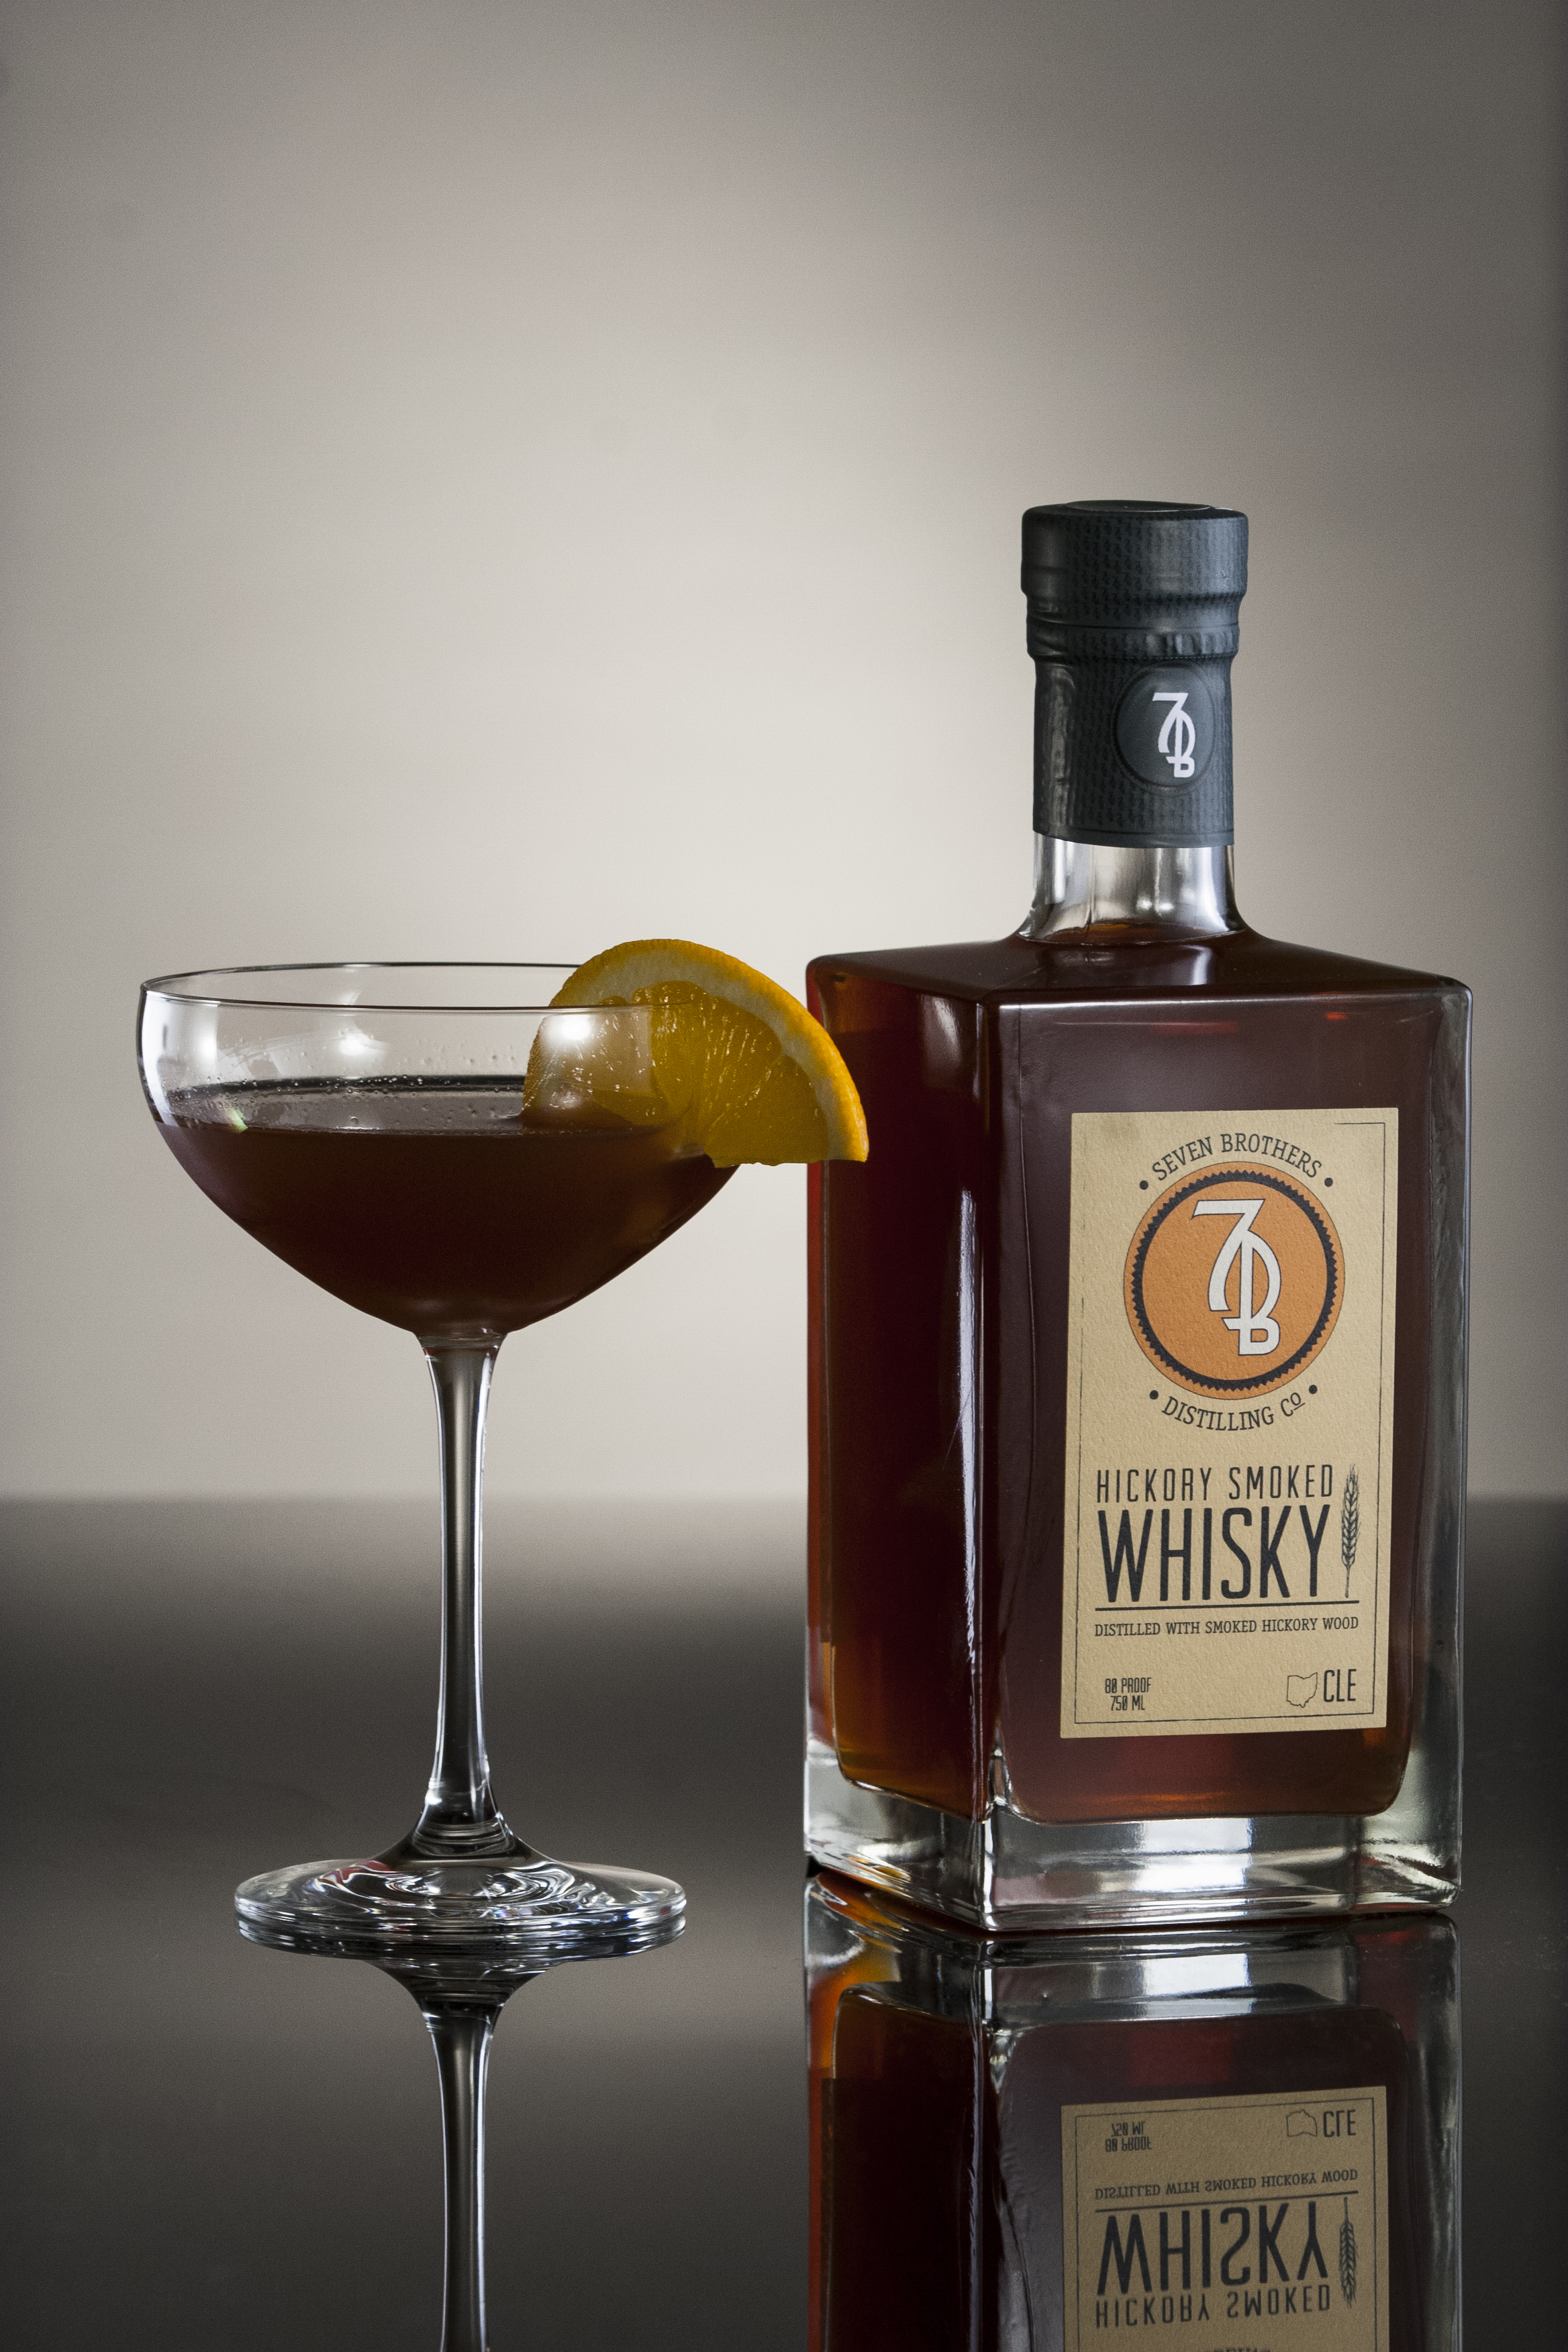 SMOKY GROVE - 2 oz Seven Brothers Hickory Smoked Whisky1/2 oz Sweet Vermouth (Carpano Antica)1/2 oz Dry Vermouth (Dolin)1 dash Angostura Bitters1 dash Orange BittersStir with ice and strain into a chilled Coupe. Garnish with a cherry or orange.